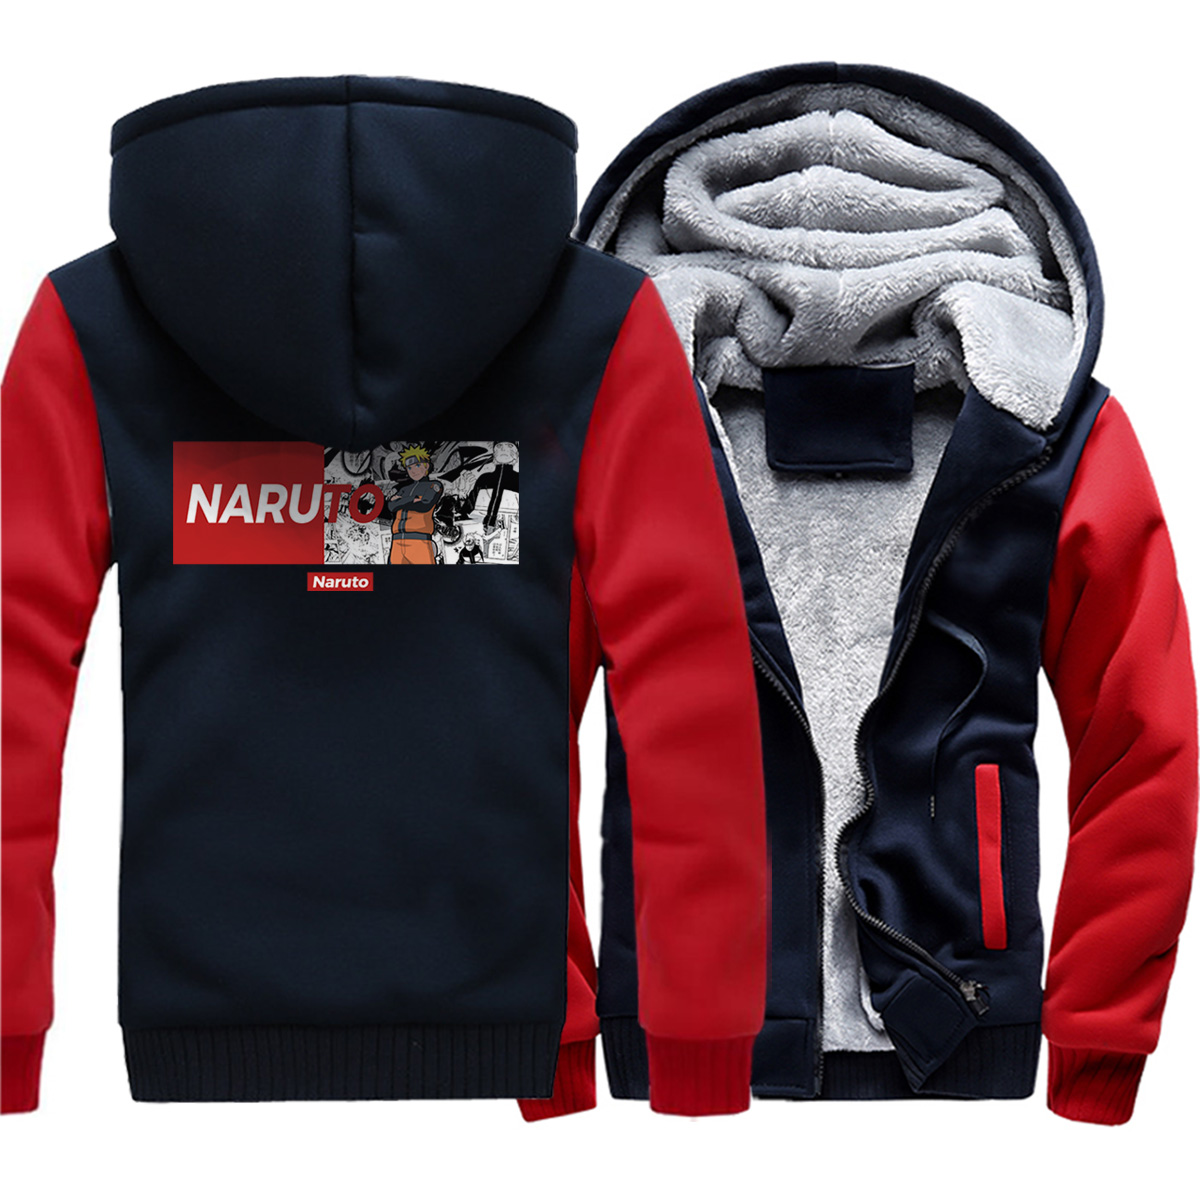 Anime Hatake Kakashi Cosplay Naruto Clothes Hatake Kakashi Plus Velvet thickening Hooded sweatshirt Coat Jackets Tops hoodies in Hoodies amp Sweatshirts from Men 39 s Clothing